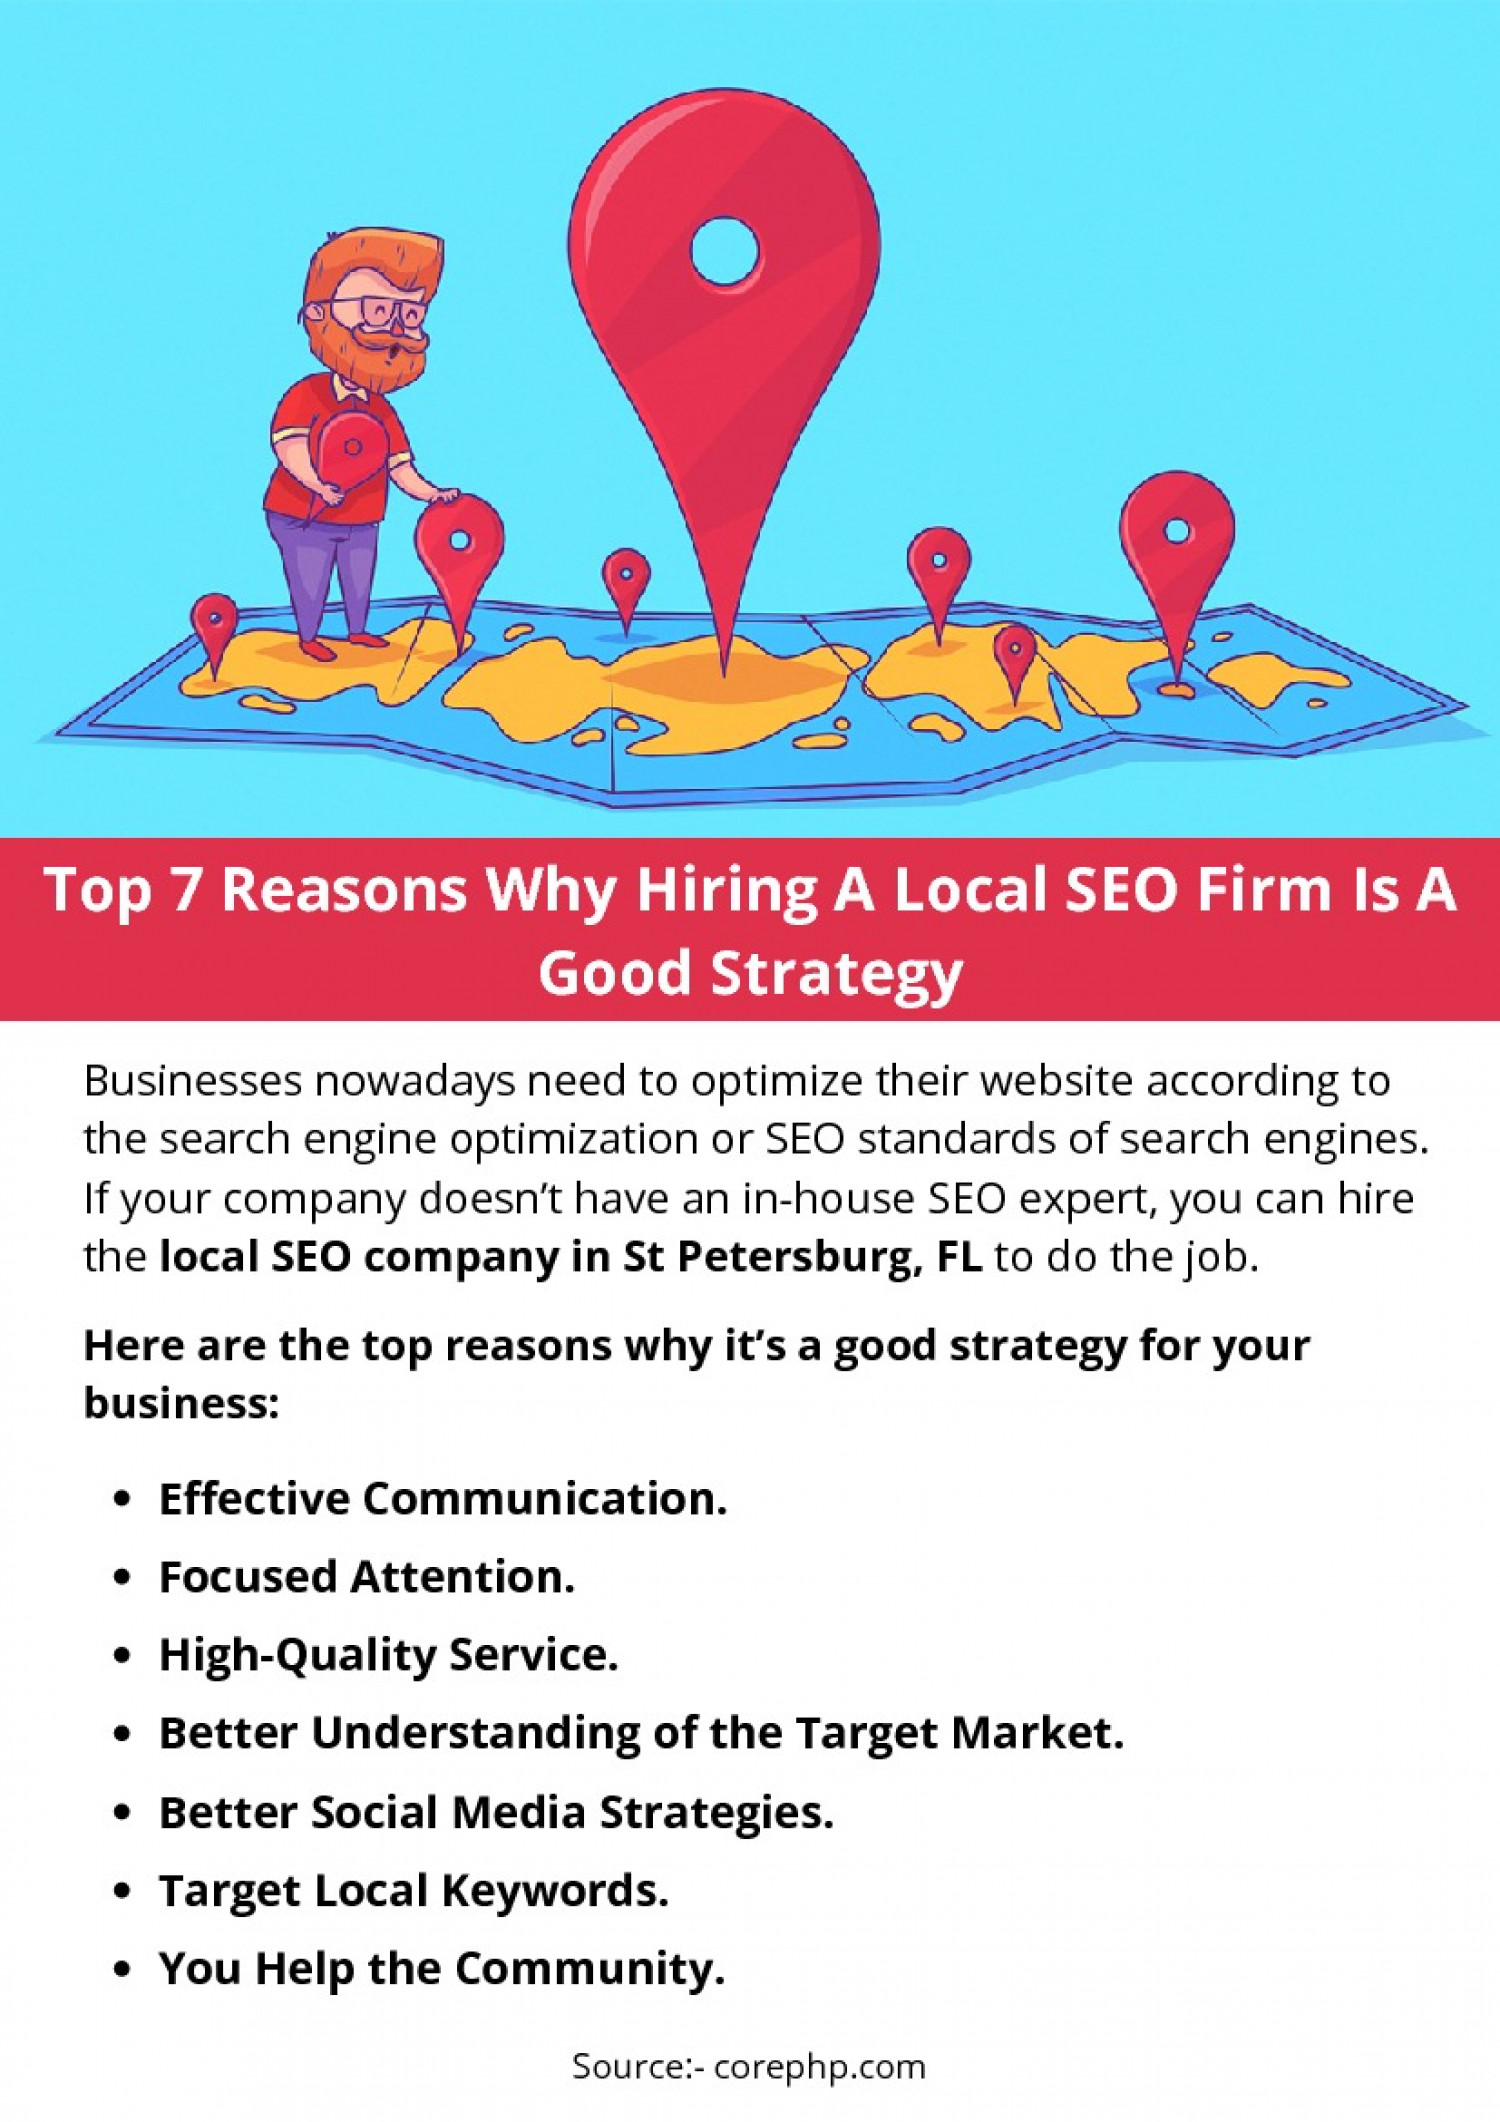 Top 7 Reasons Why Hiring A Local SEO Firm Is A Good Strategy Infographic